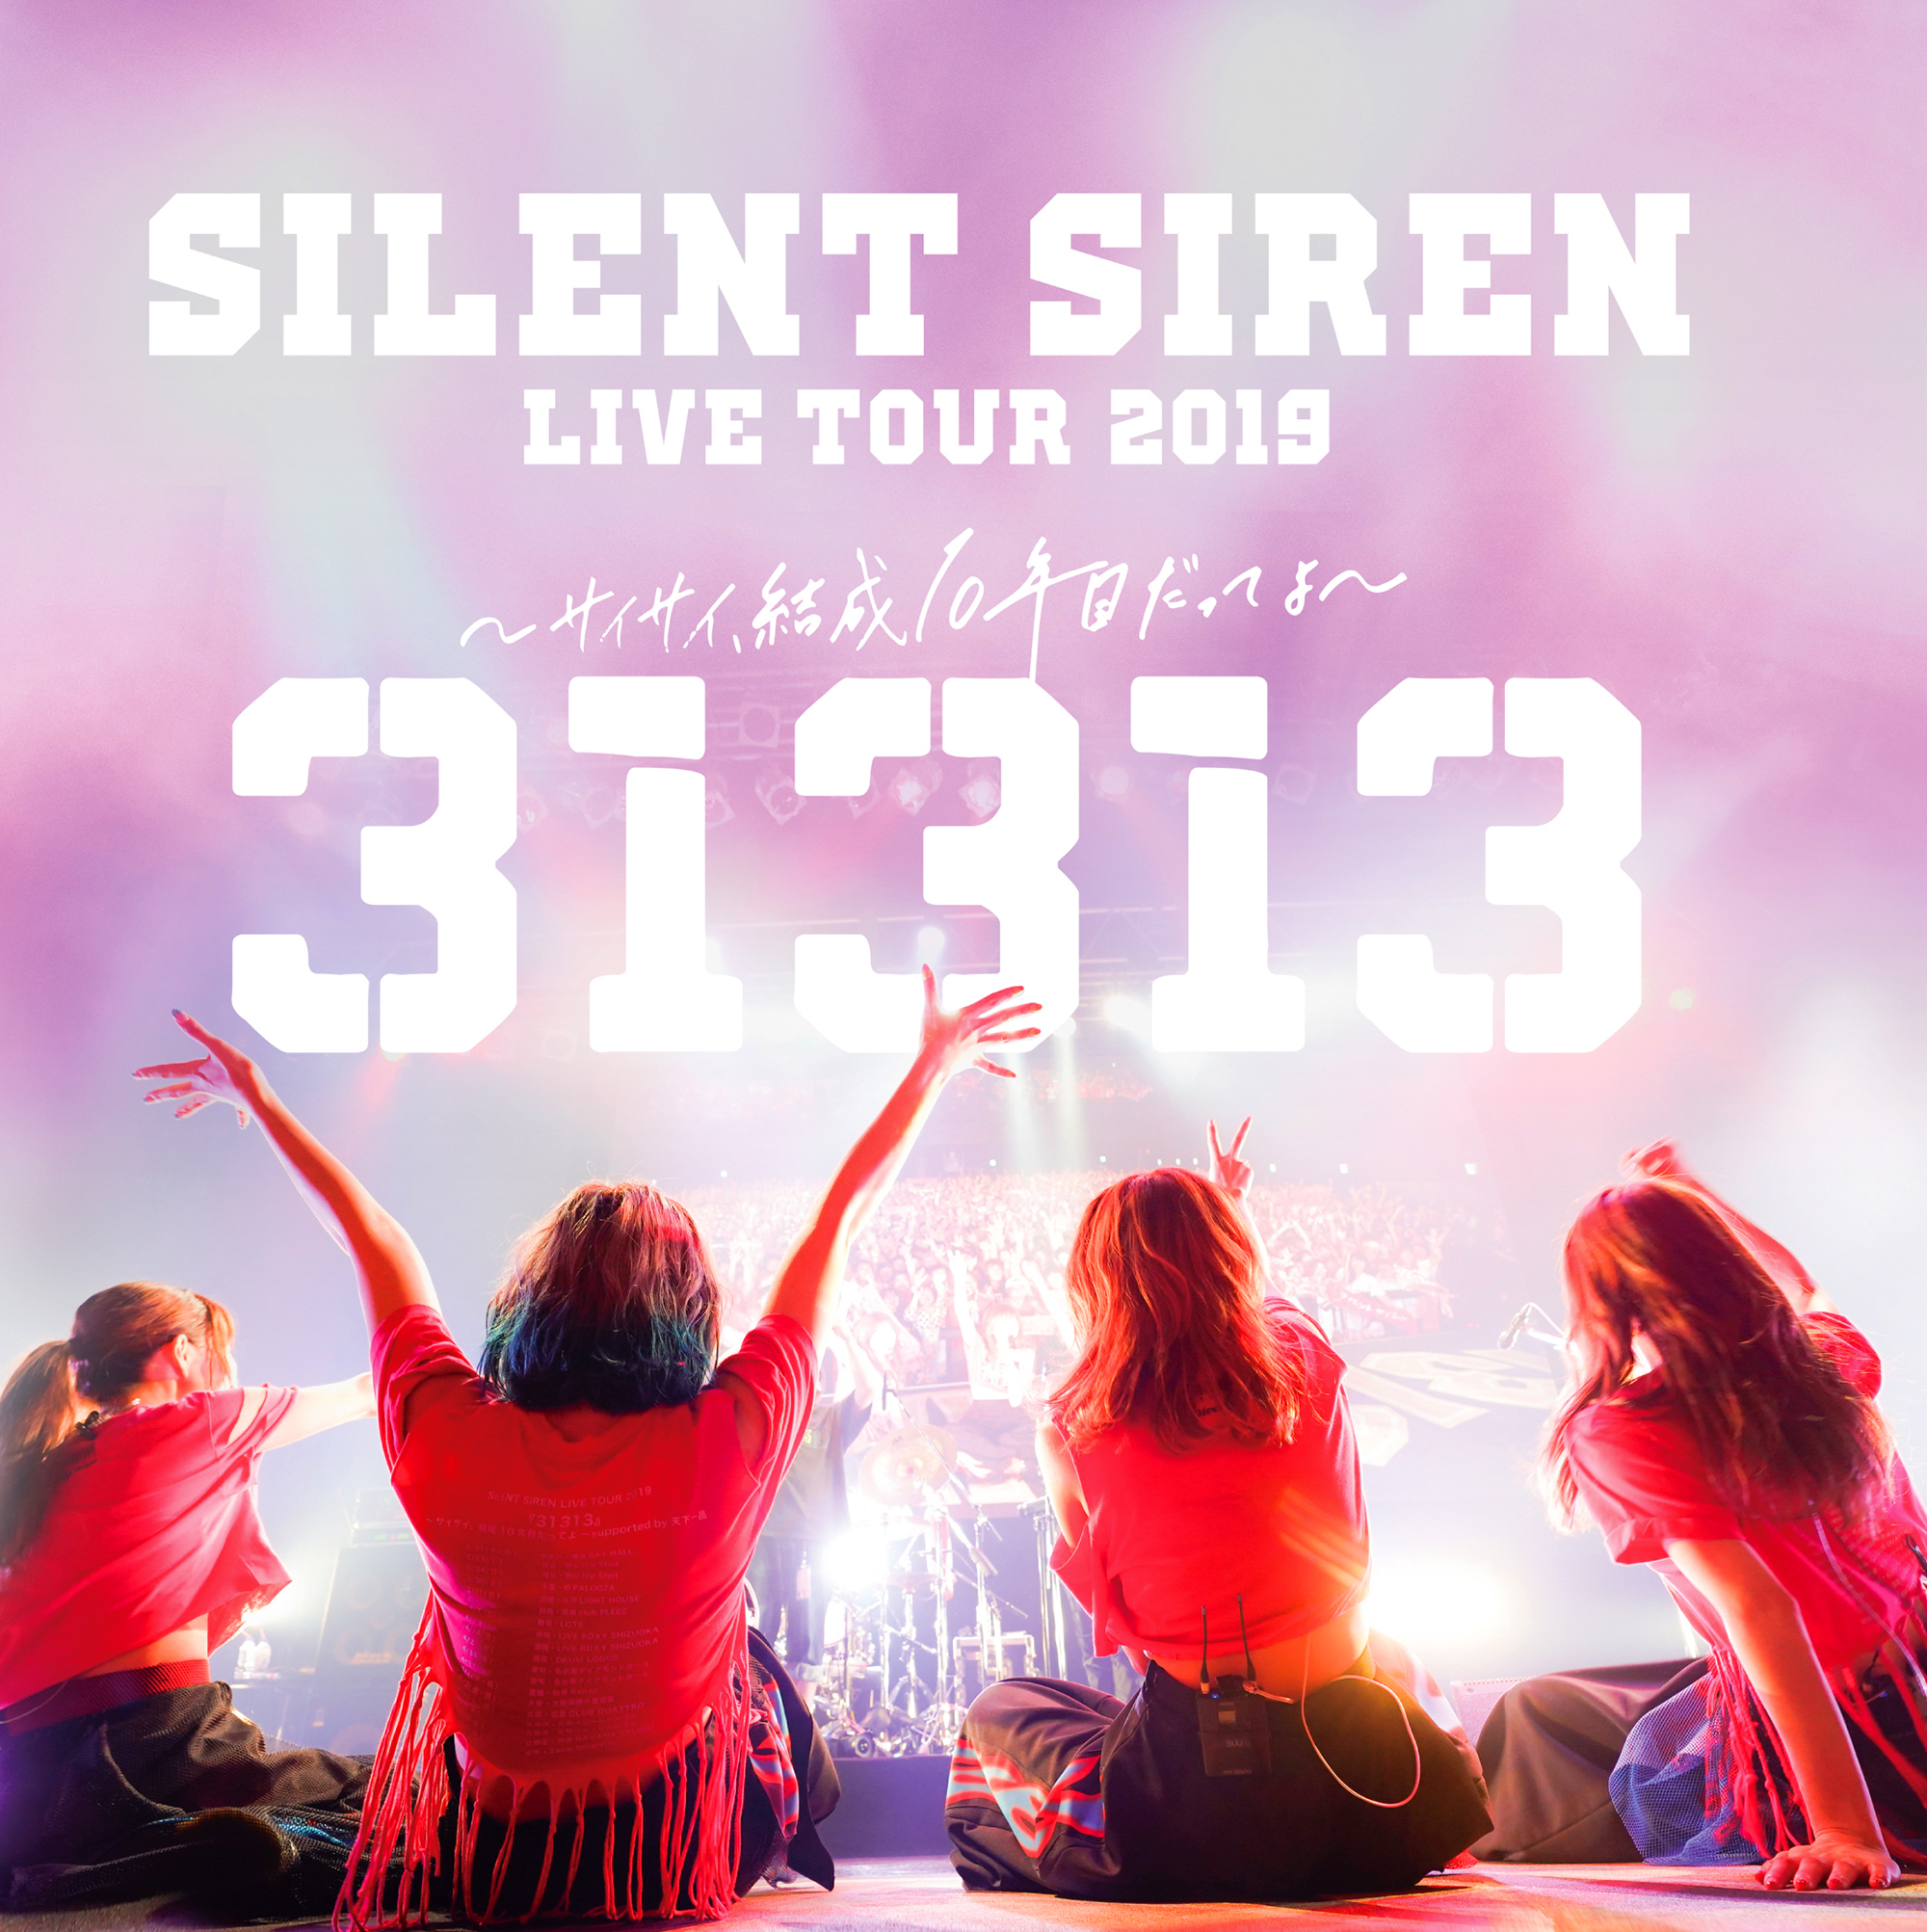 『SILENT SIREN LIVE TOUR 2019「31313」〜サイサイ、結成10年目だってよ〜 supported by 天下一品 @ Zepp DiverCity』FC盤